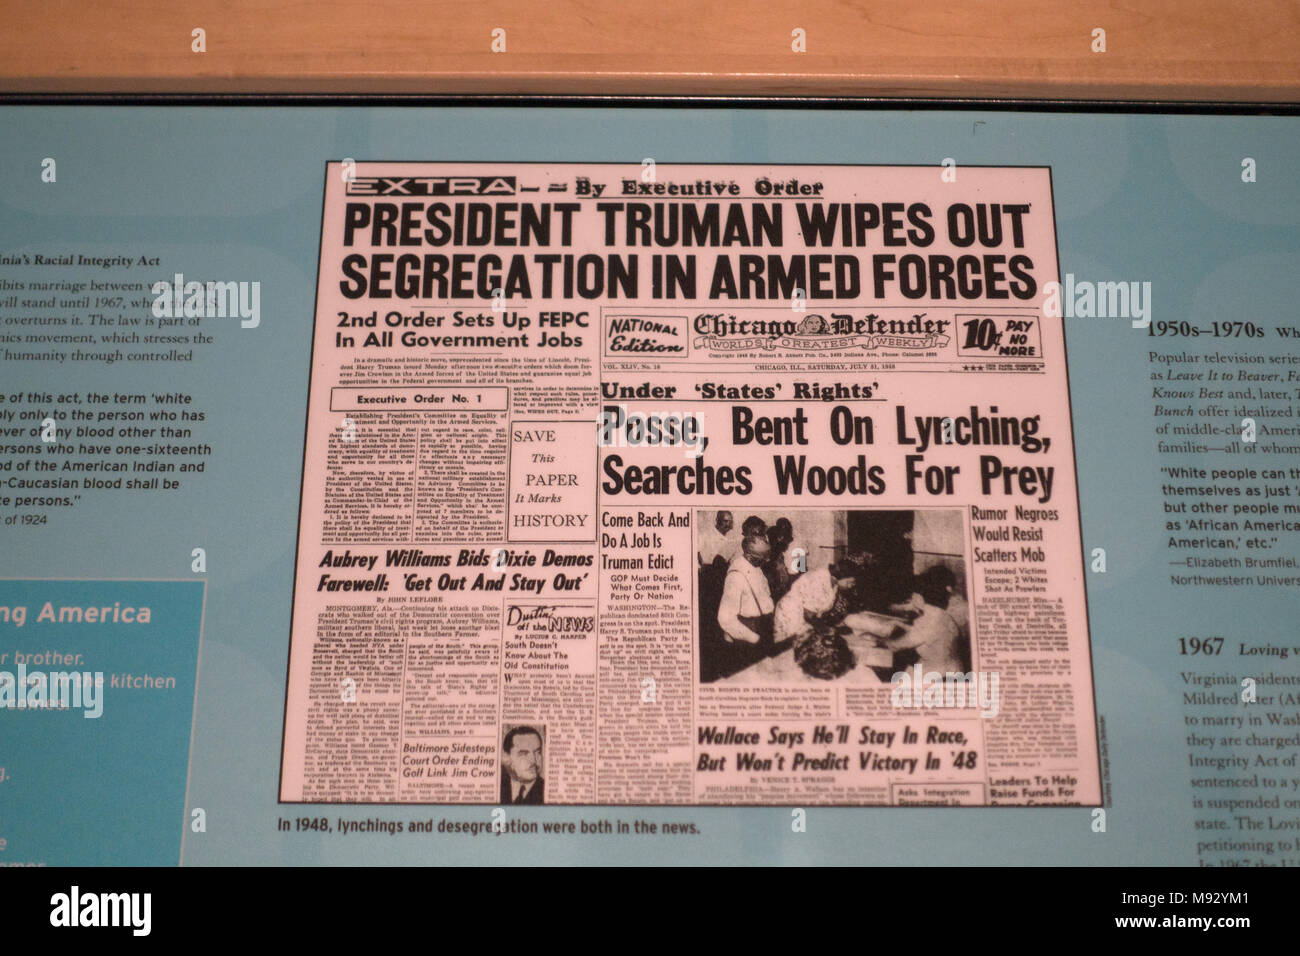 Newspaper from 1948 where desegregation and lynching were both in the news, exhibited at the Science Museum of Minnesota. St Paul Minnesota MN USA - Stock Image